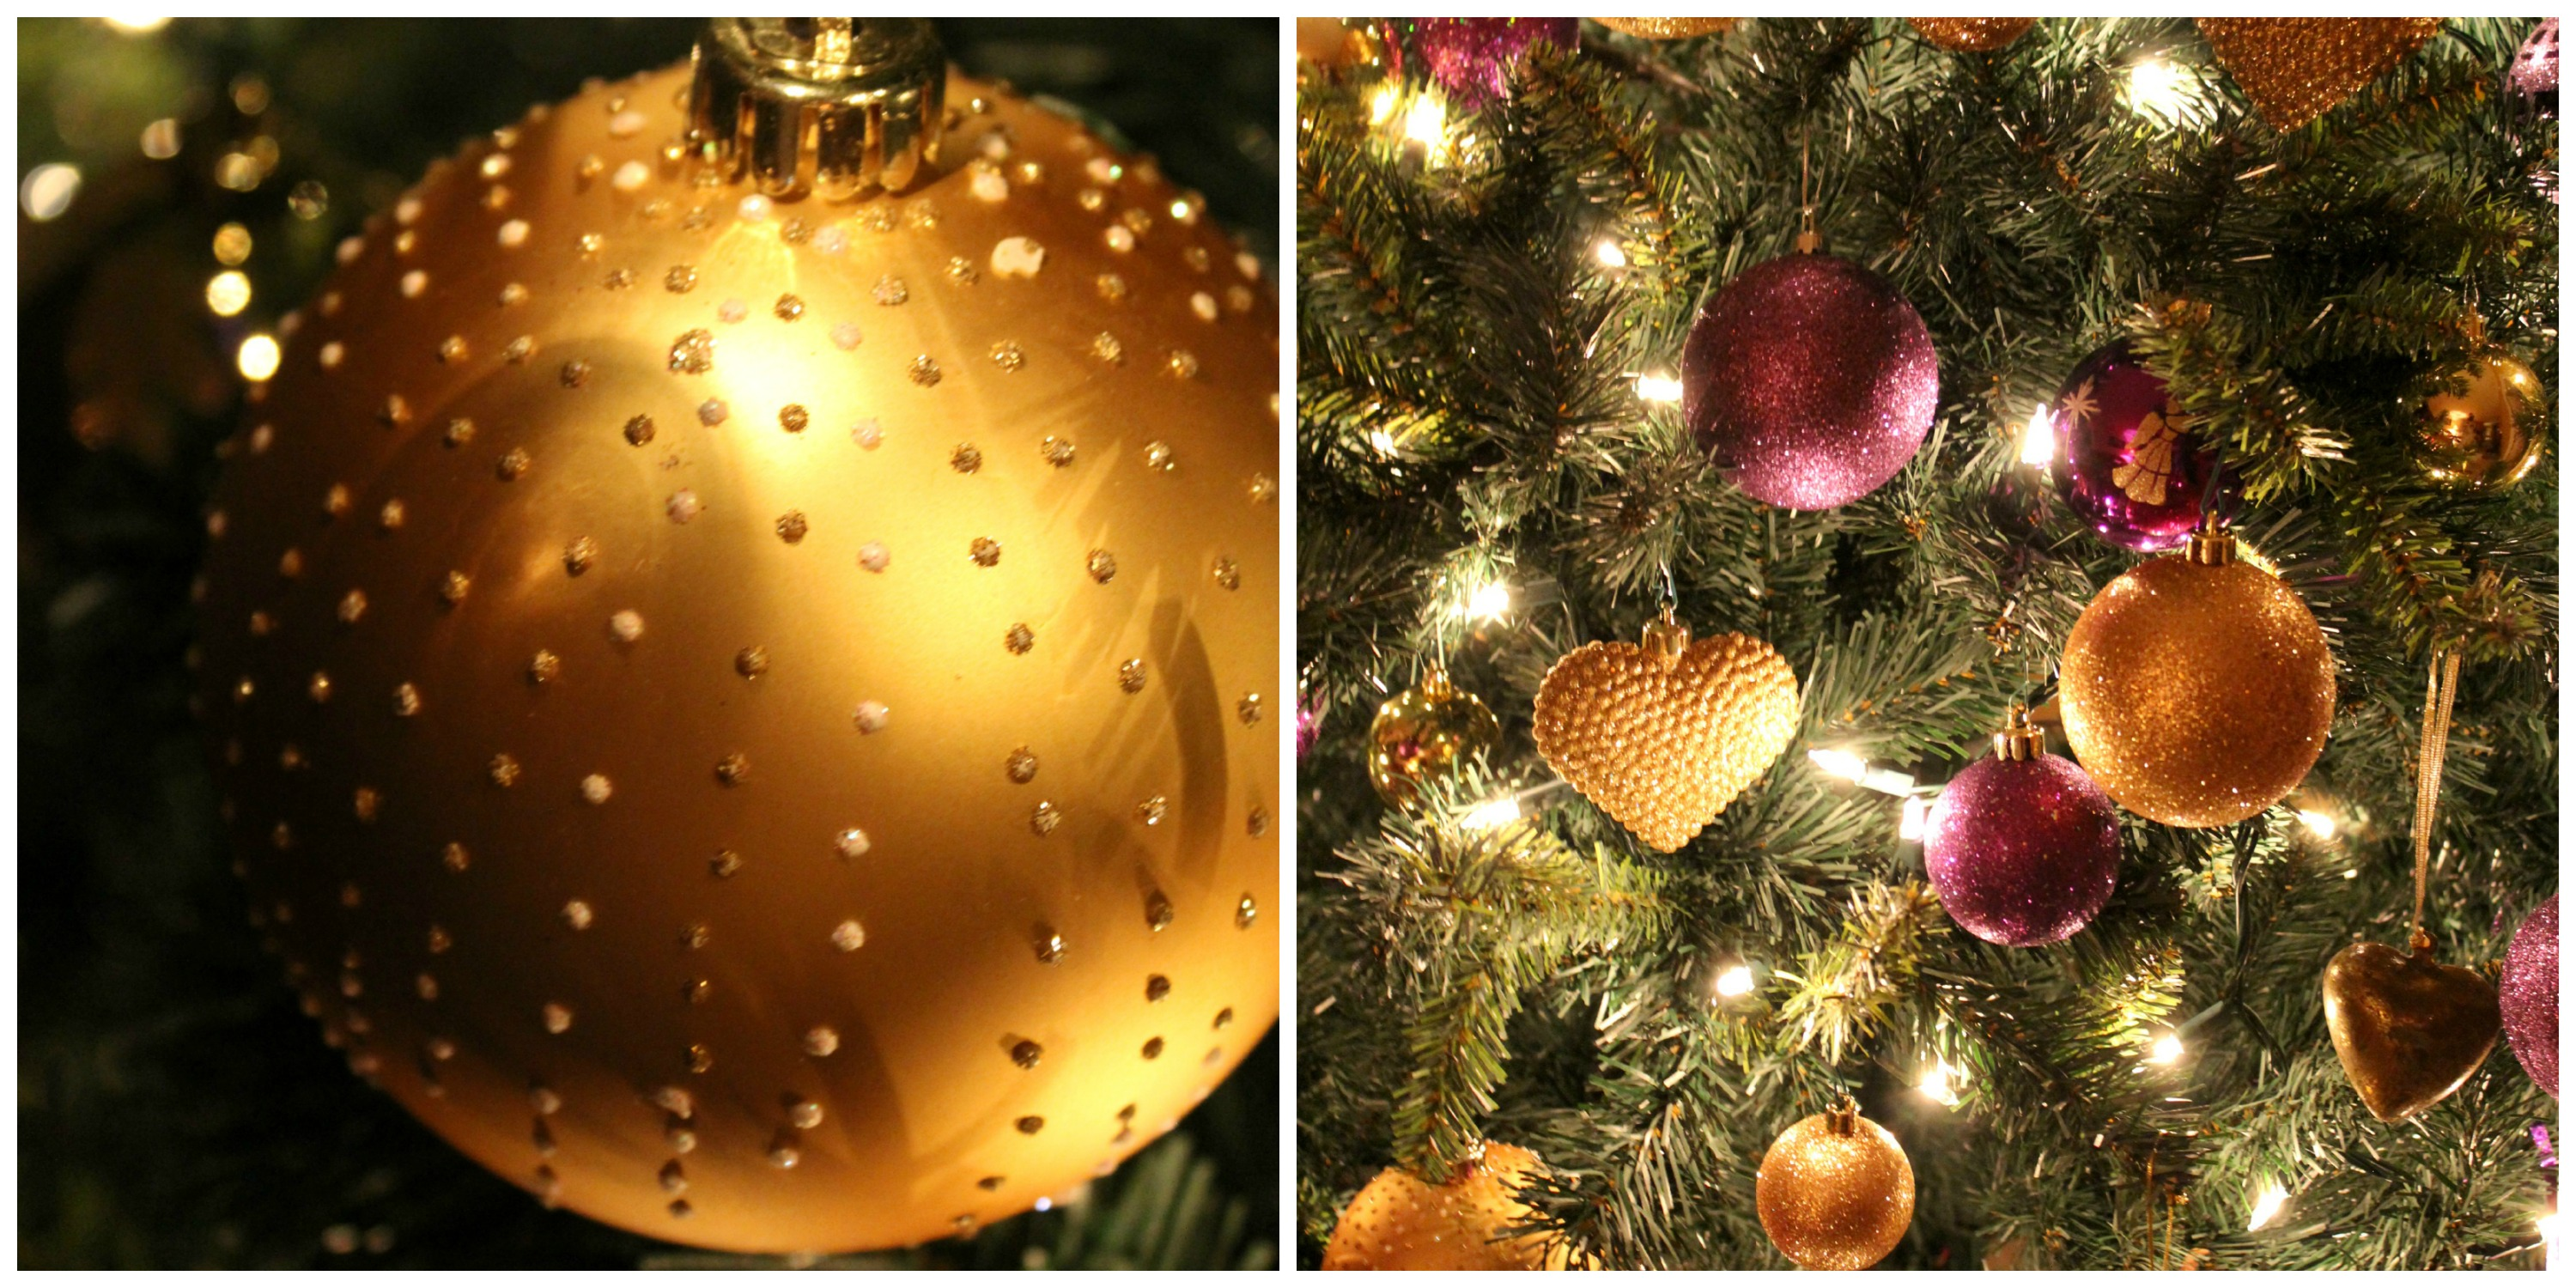 Purple and gold christmas tree decorations - We Have To Have Hot Cocoa Before Any Decorating Can Begin With Baileys Irish Cream Yesss Please